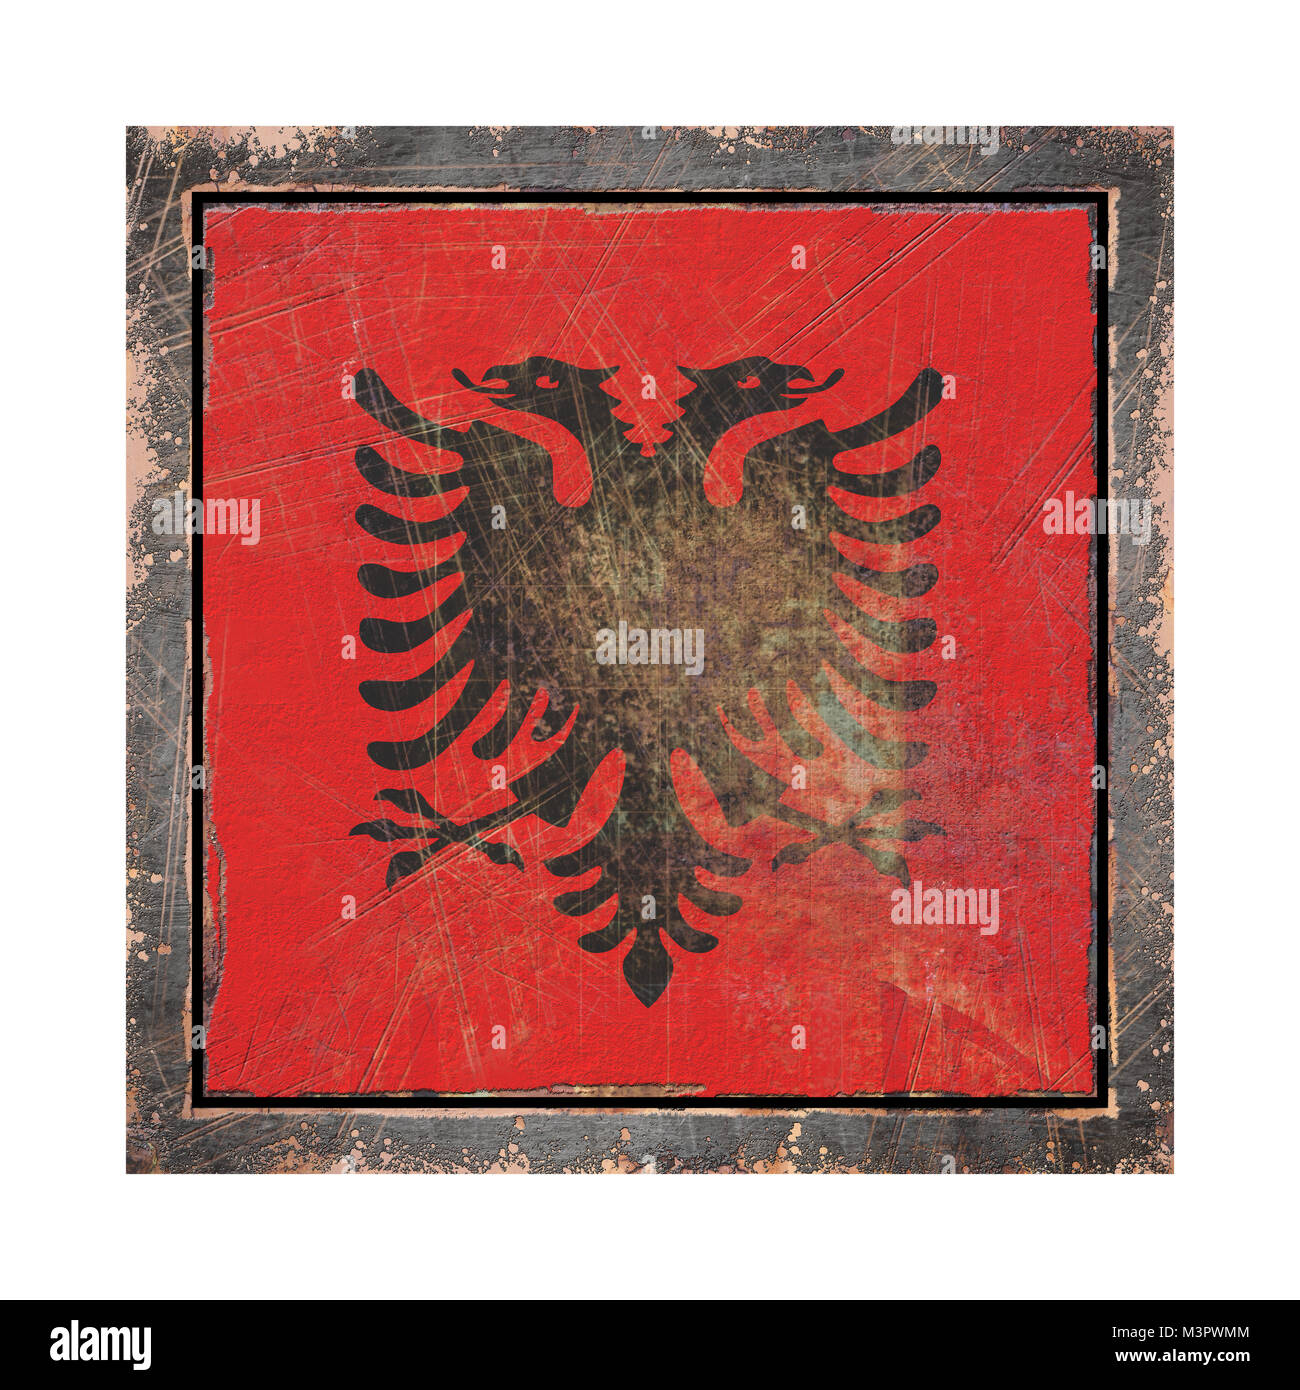 3d rendering of an Albania flag over a rusty metallic plate wit a rusty frame. Isolated on white background. - Stock Image